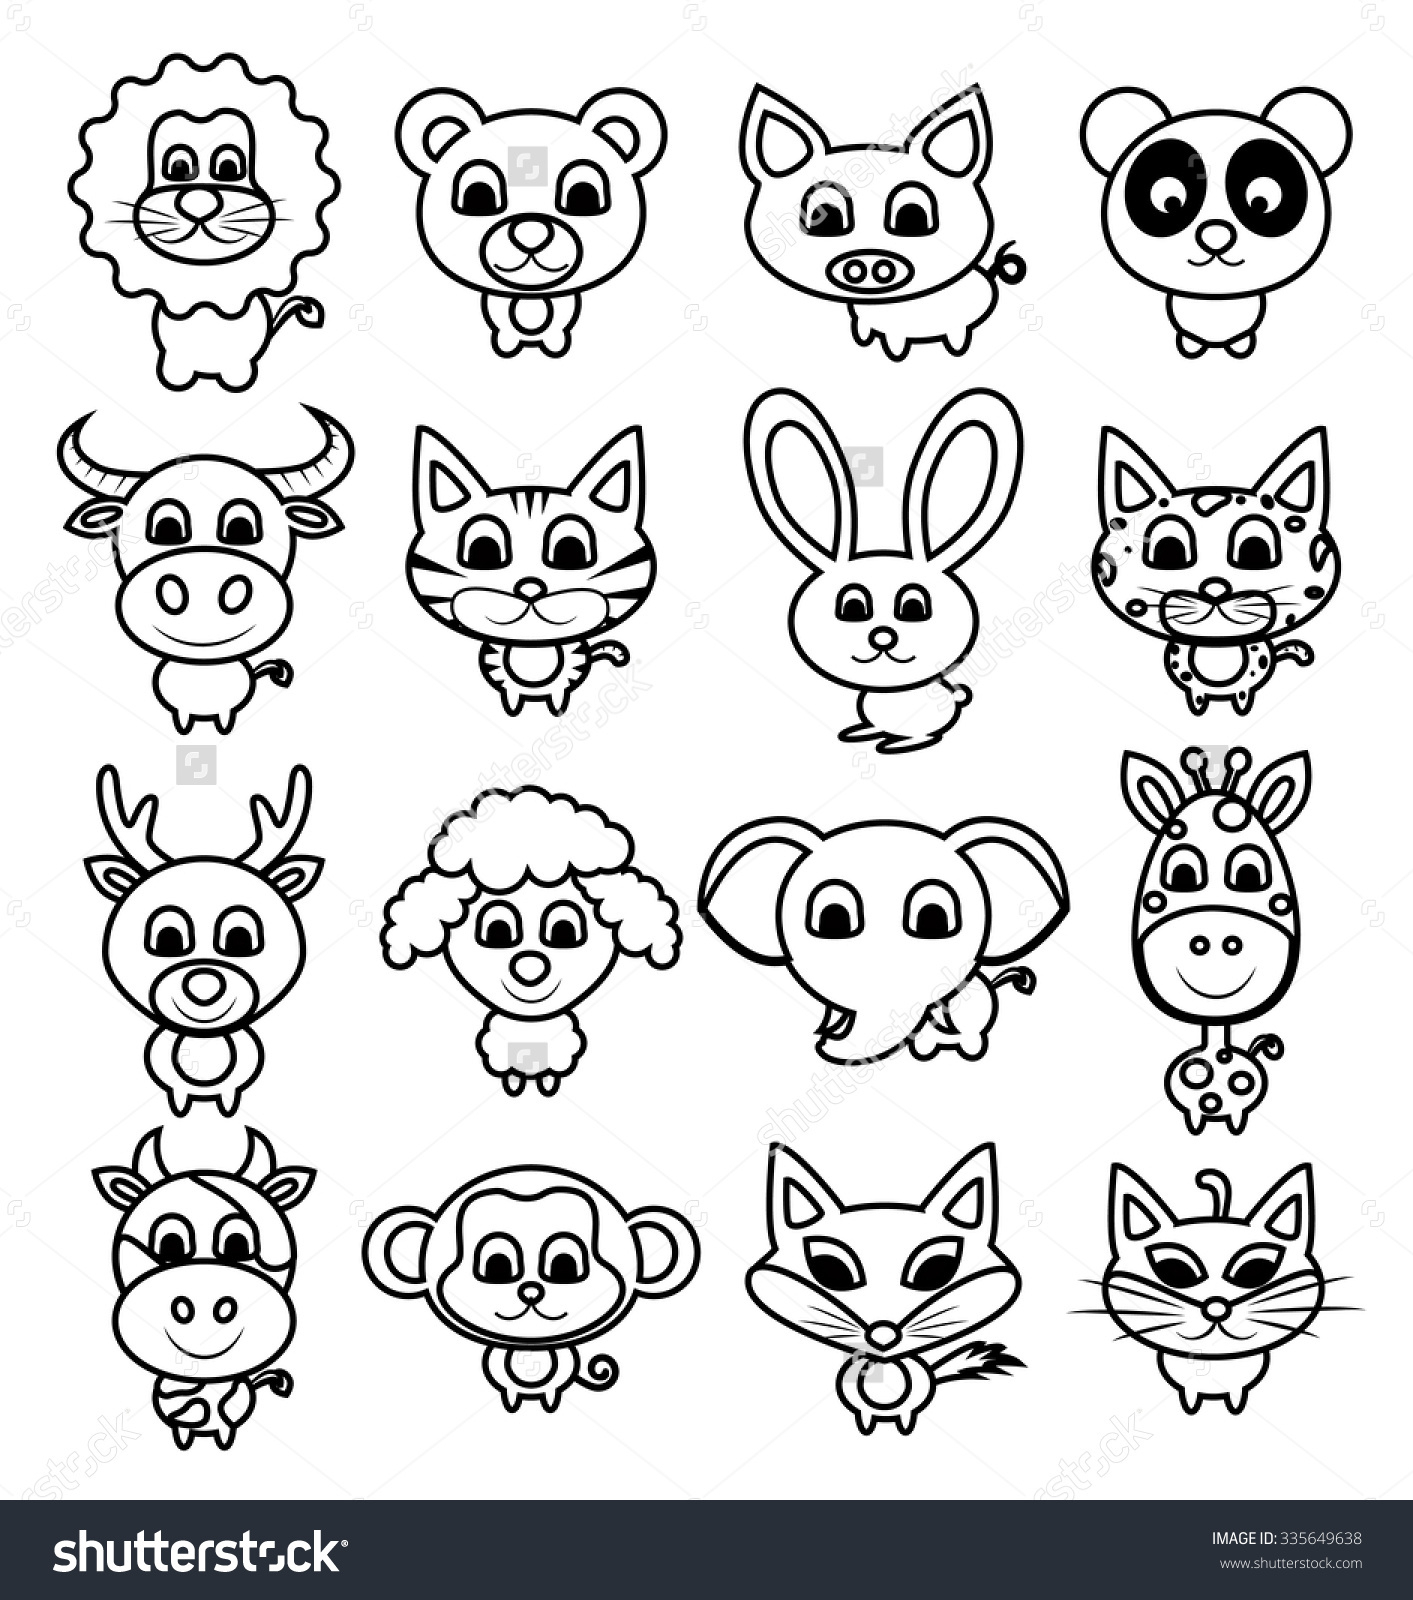 1413x1600 Baby Animal Drawing Cute Ideas Drawings And Cartoons - Animal Drawing Ideas